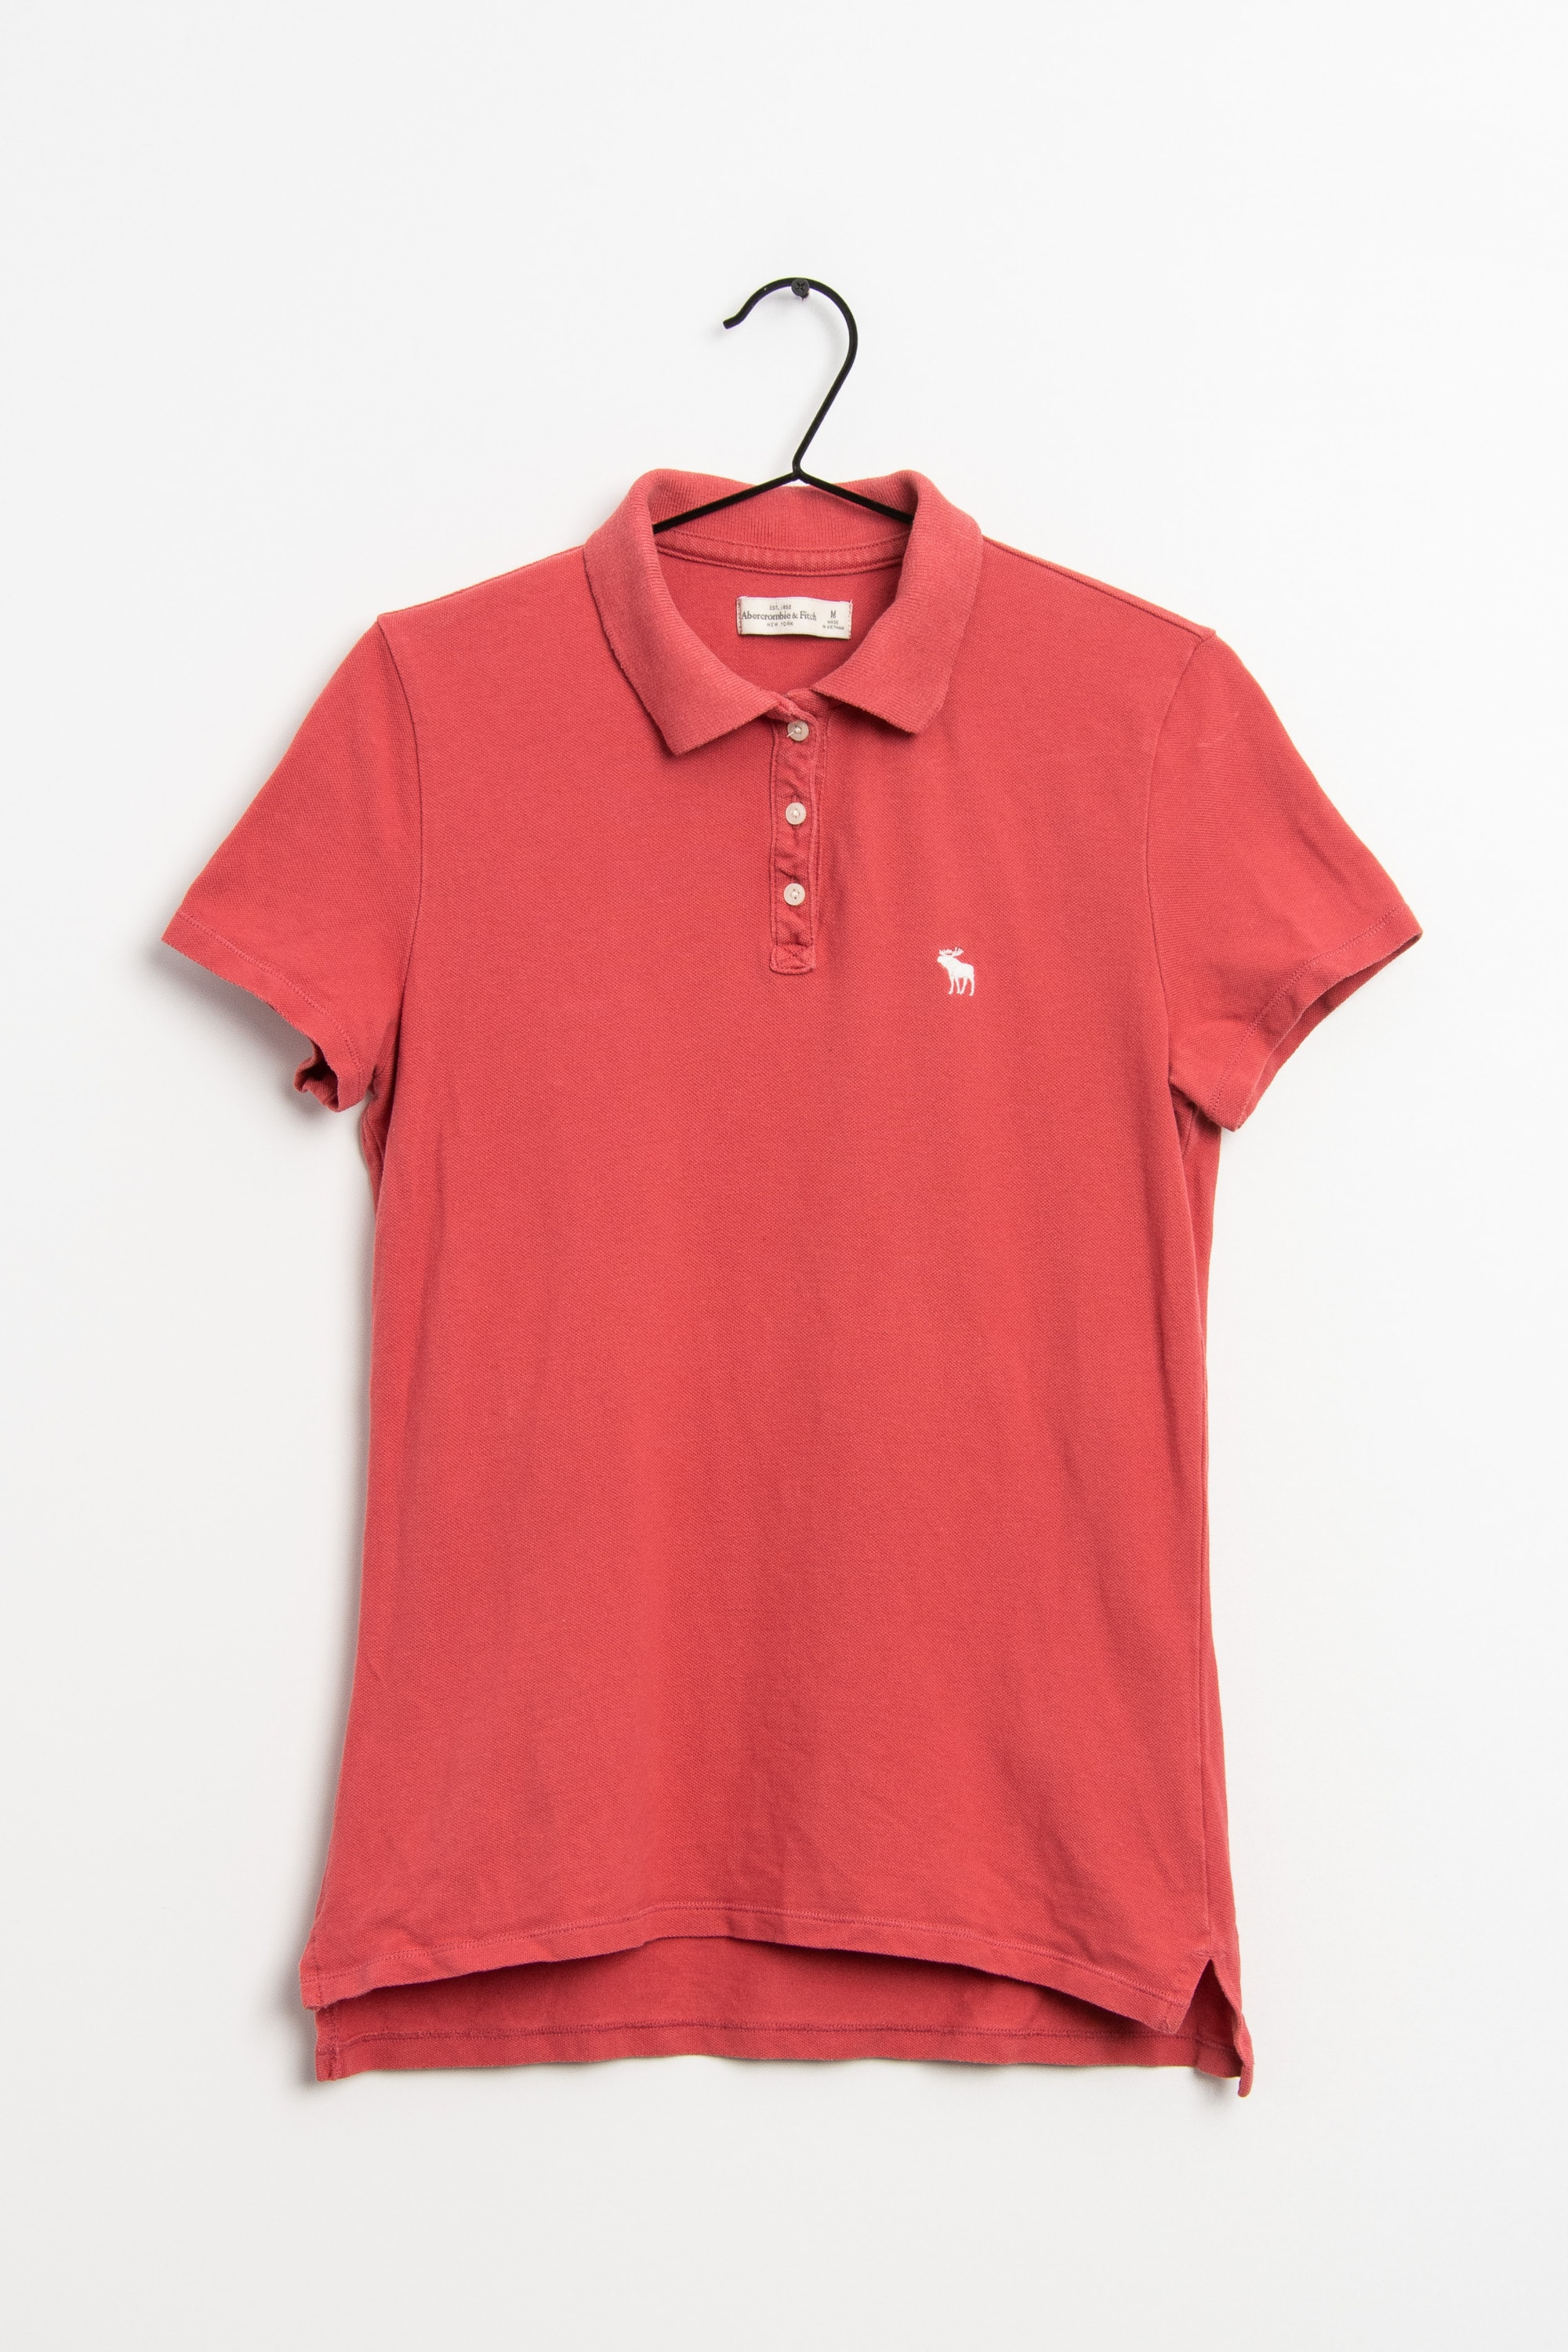 Abercrombie & Fitch T-Shirt Pink Gr.M